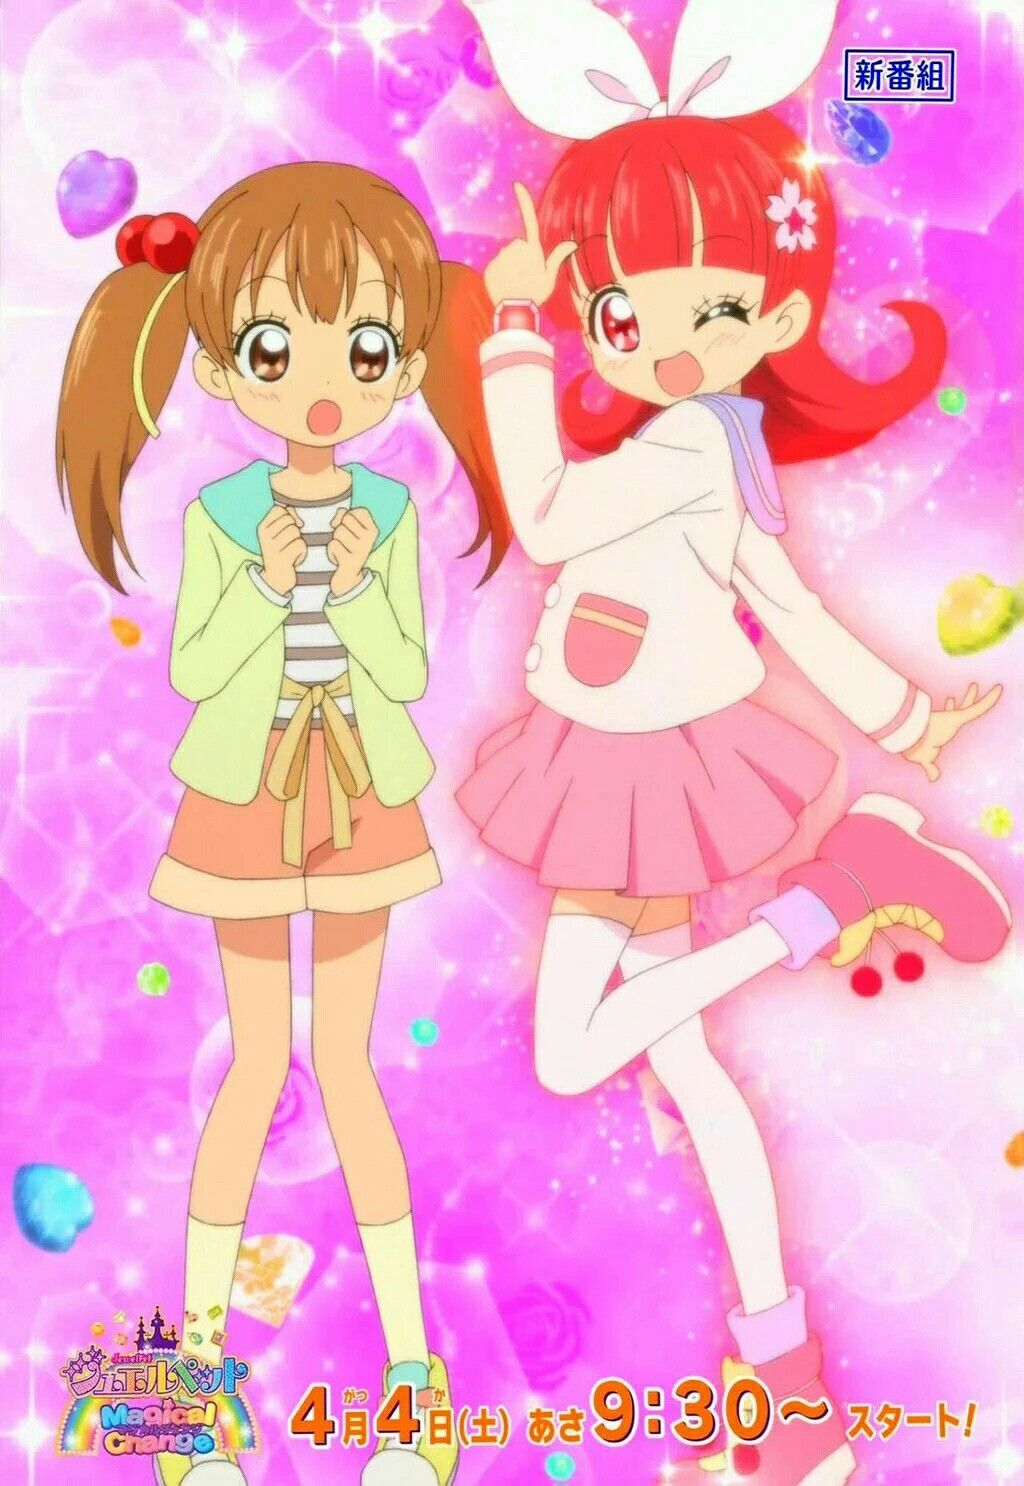 Pin by JusticeInfinity on Cute!! (With images) Anime